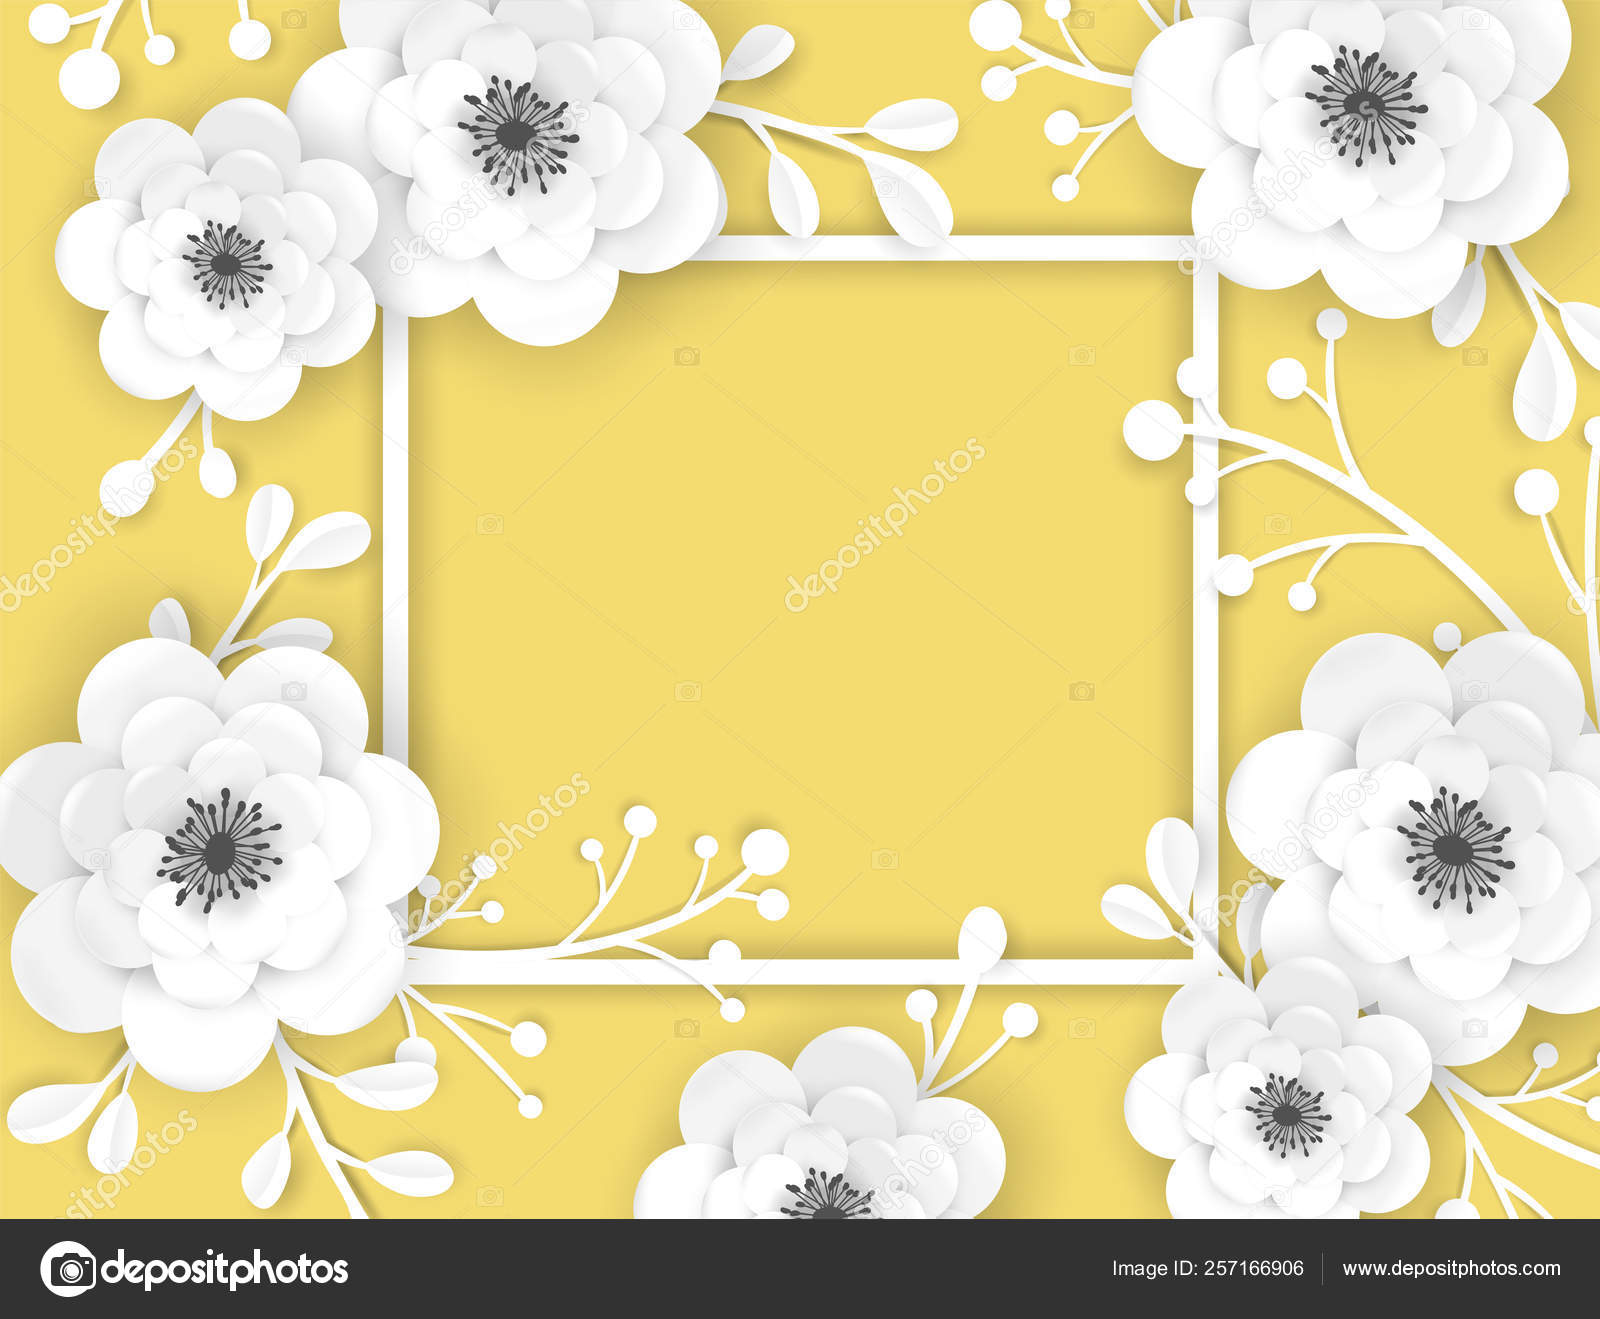 Paper Cut Flowers Frame Greeting Card Template Decorative Design ... | 1319x1600